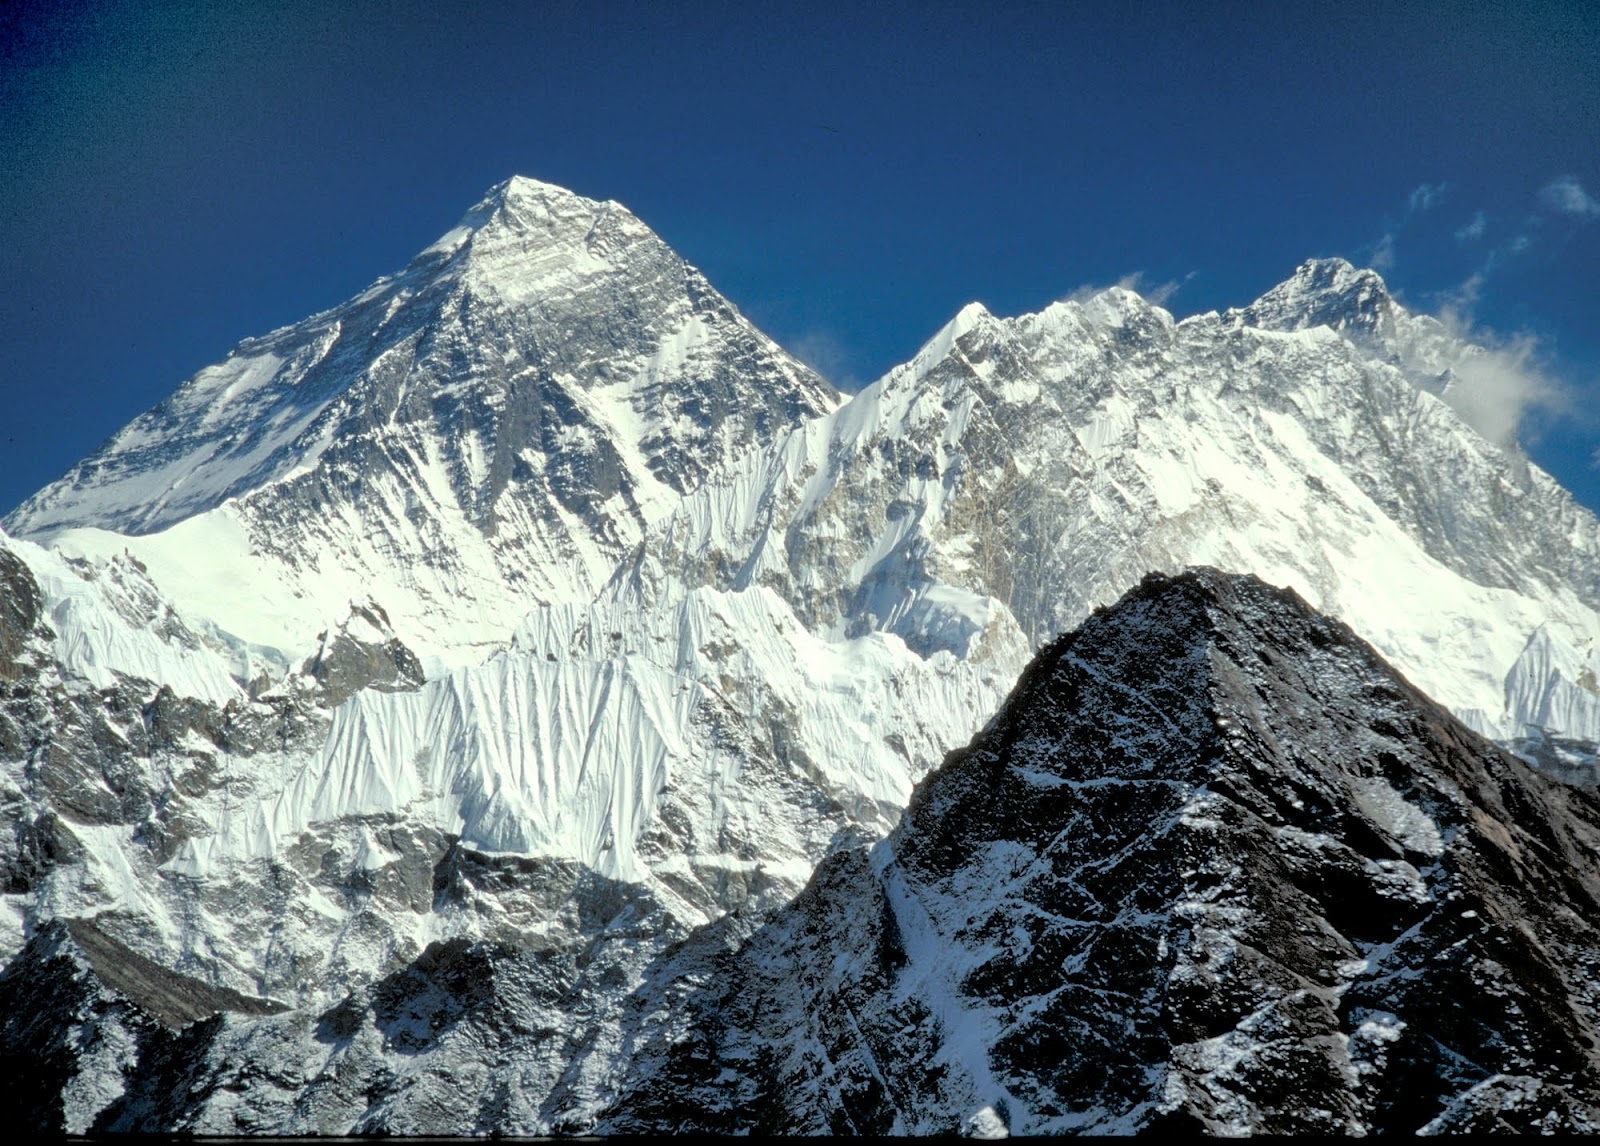 Mount Everest Nepal Interesting Info 2012-2013 | Travel And Tourism